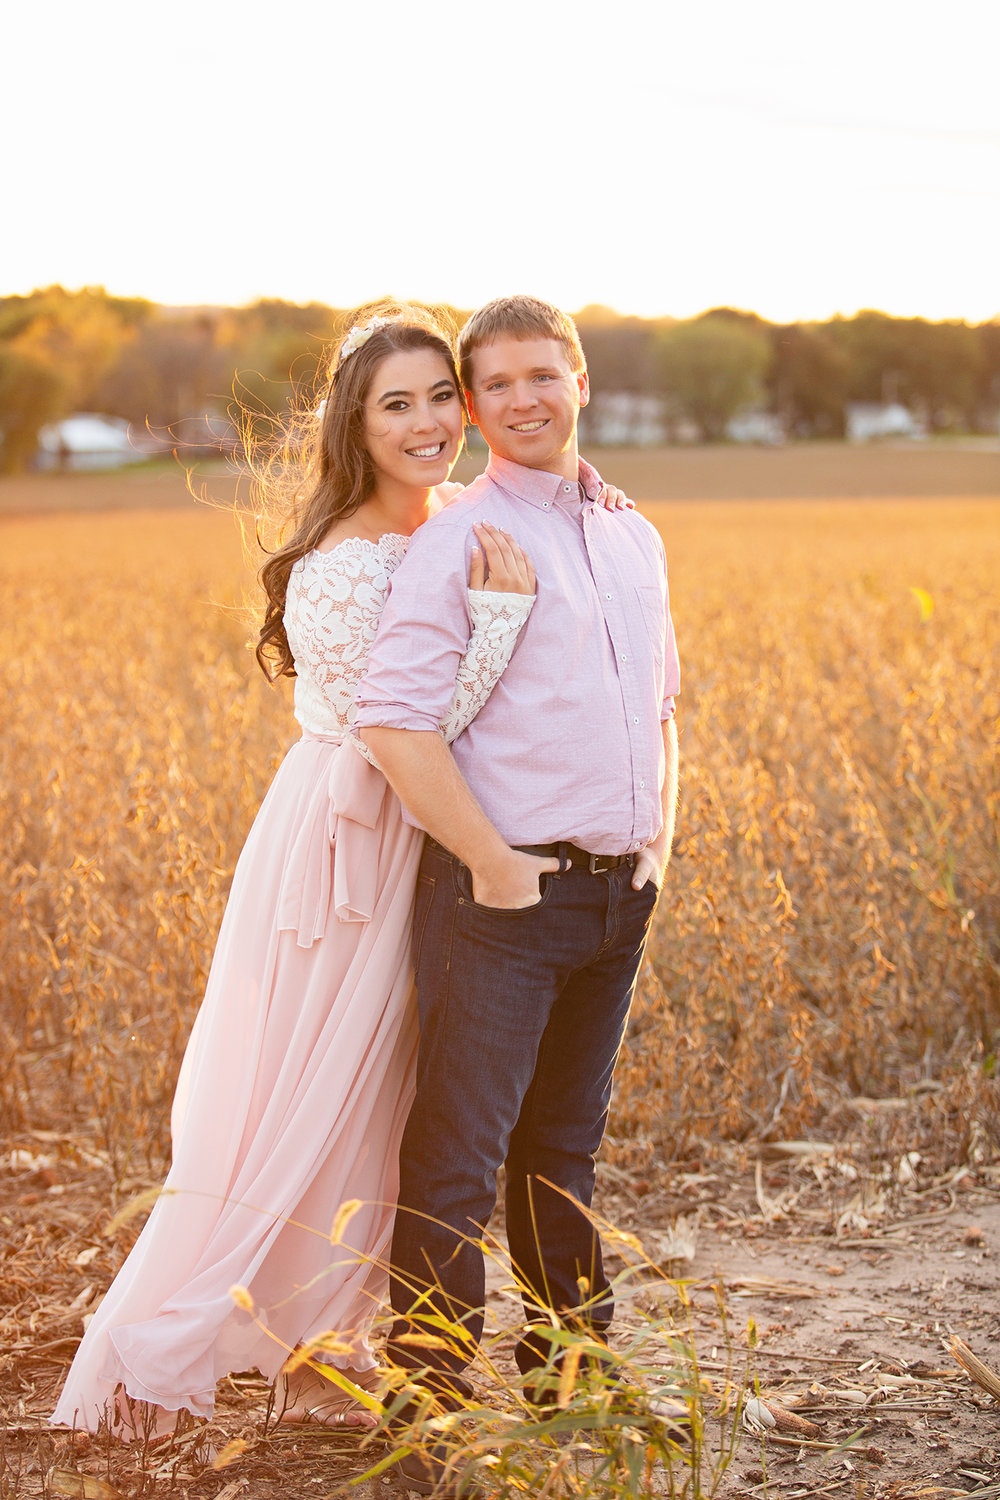 lehia erger photography engagement  wedding cedar rapids iowa country2.jpg